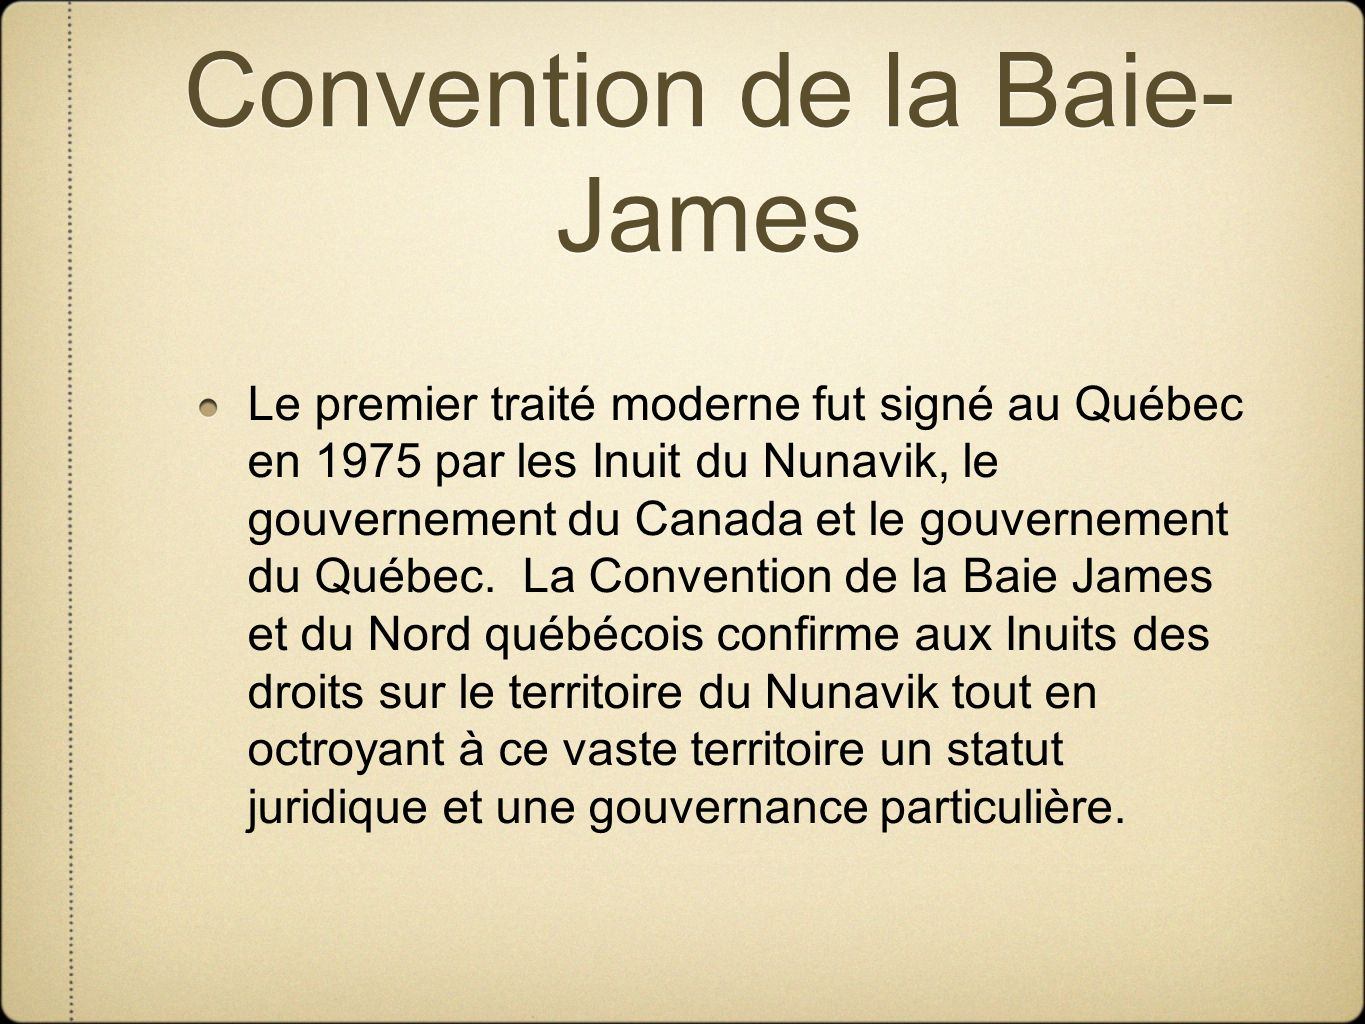 Convention de la Baie-James